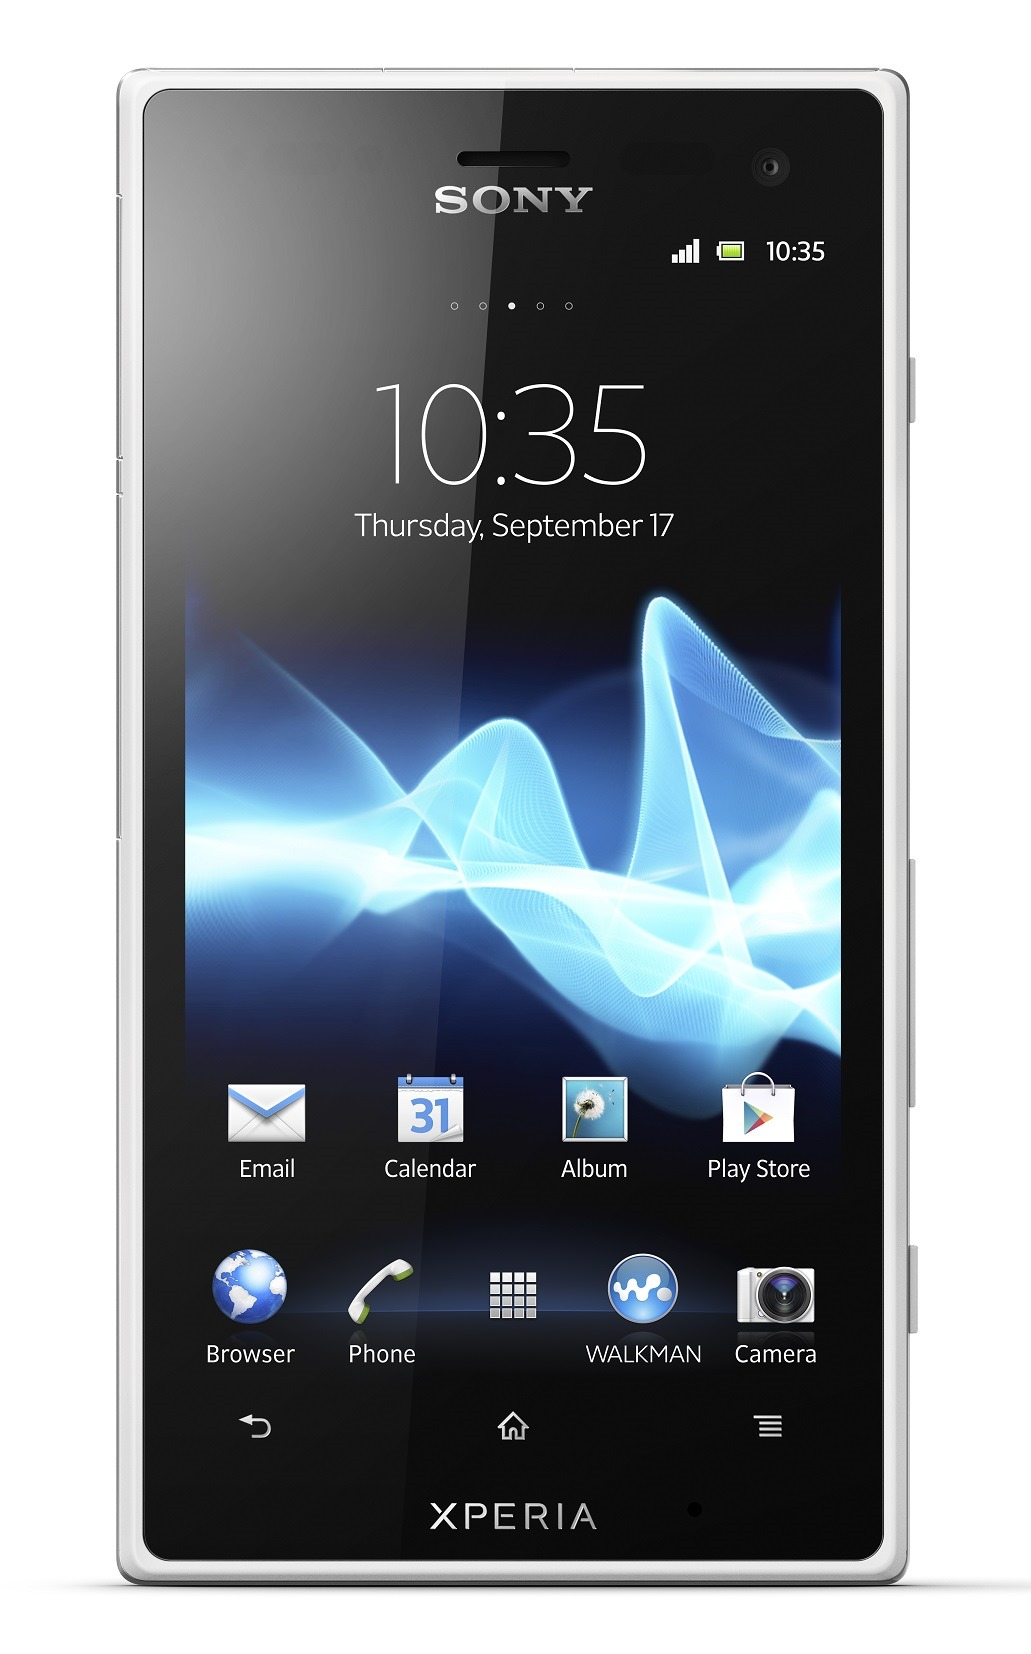 Xperia Acro